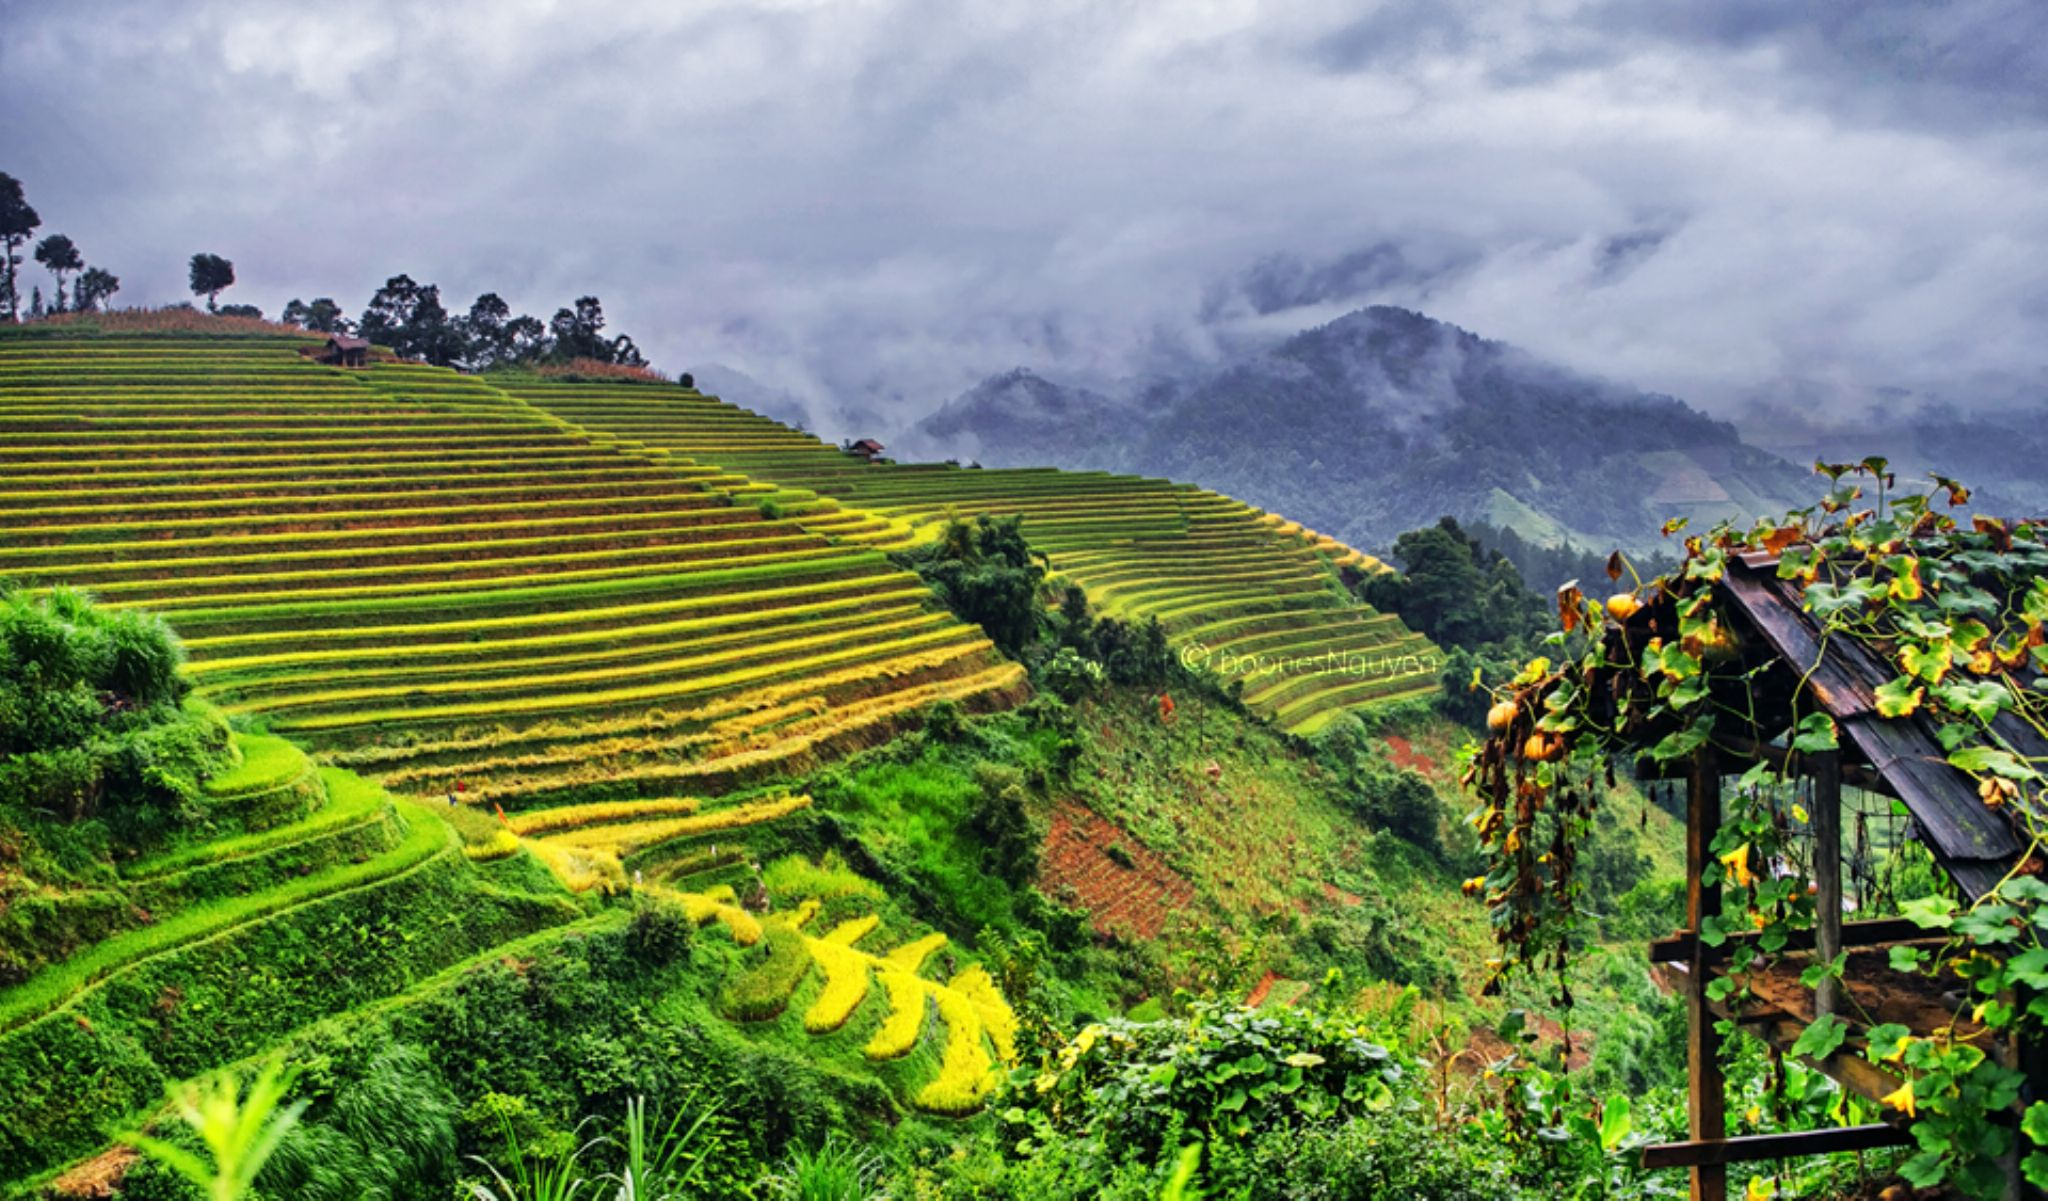 Rainy day on terraced rice field by Boones Nguyen